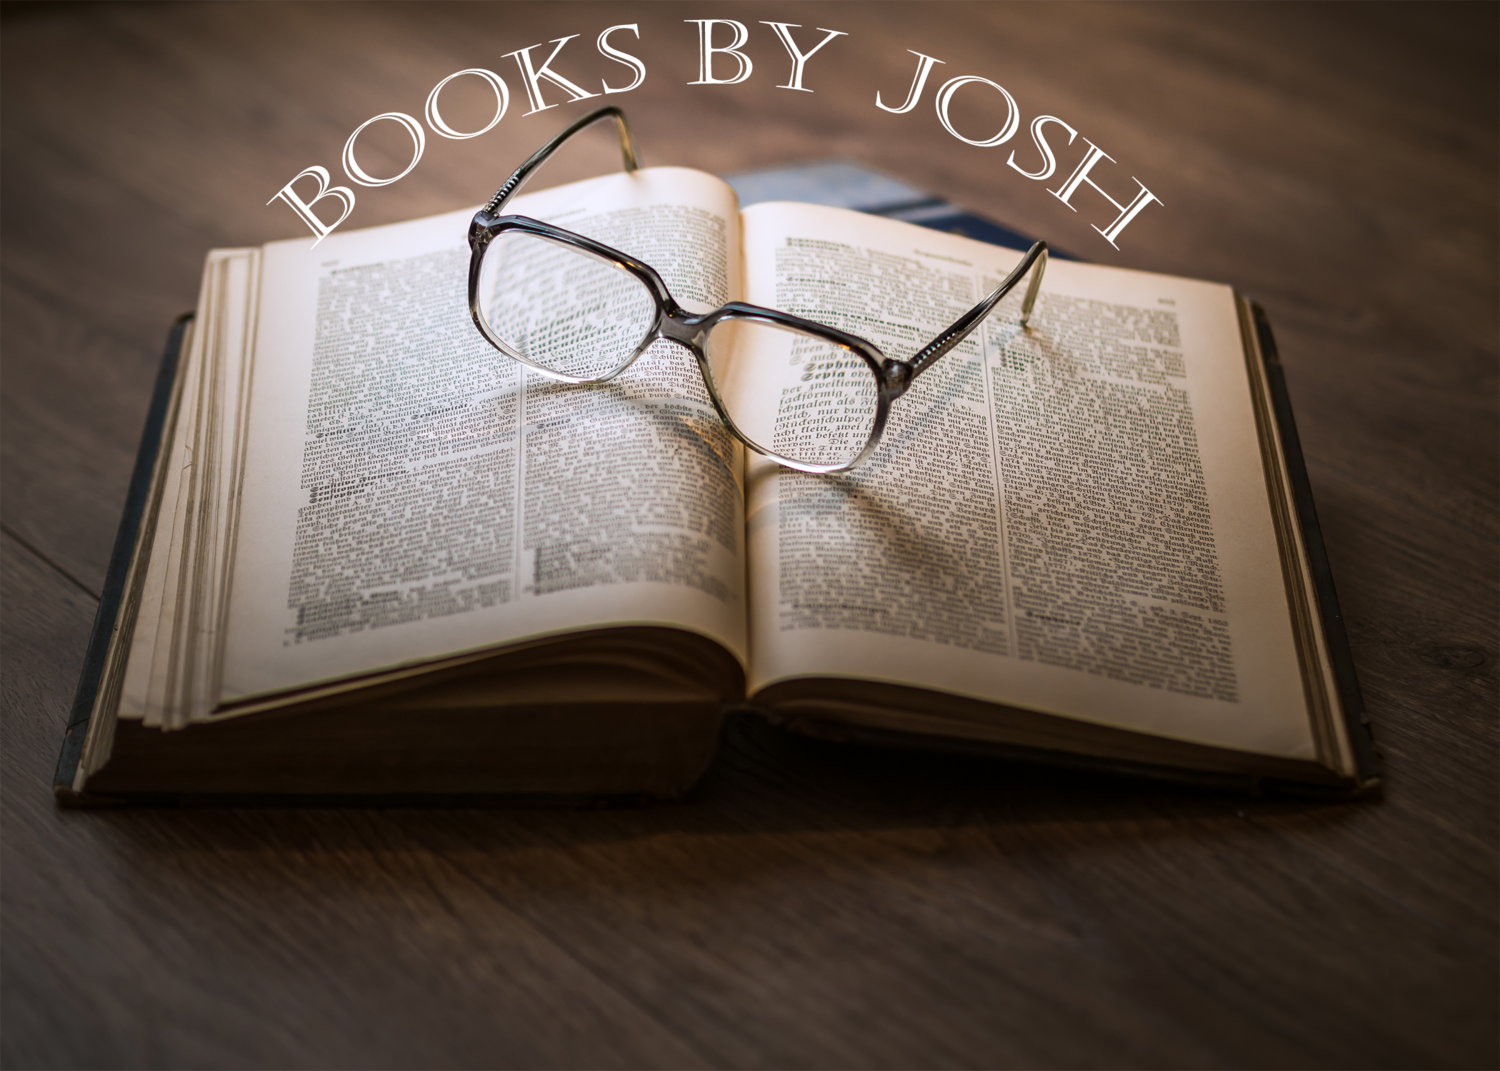 Books By Josh